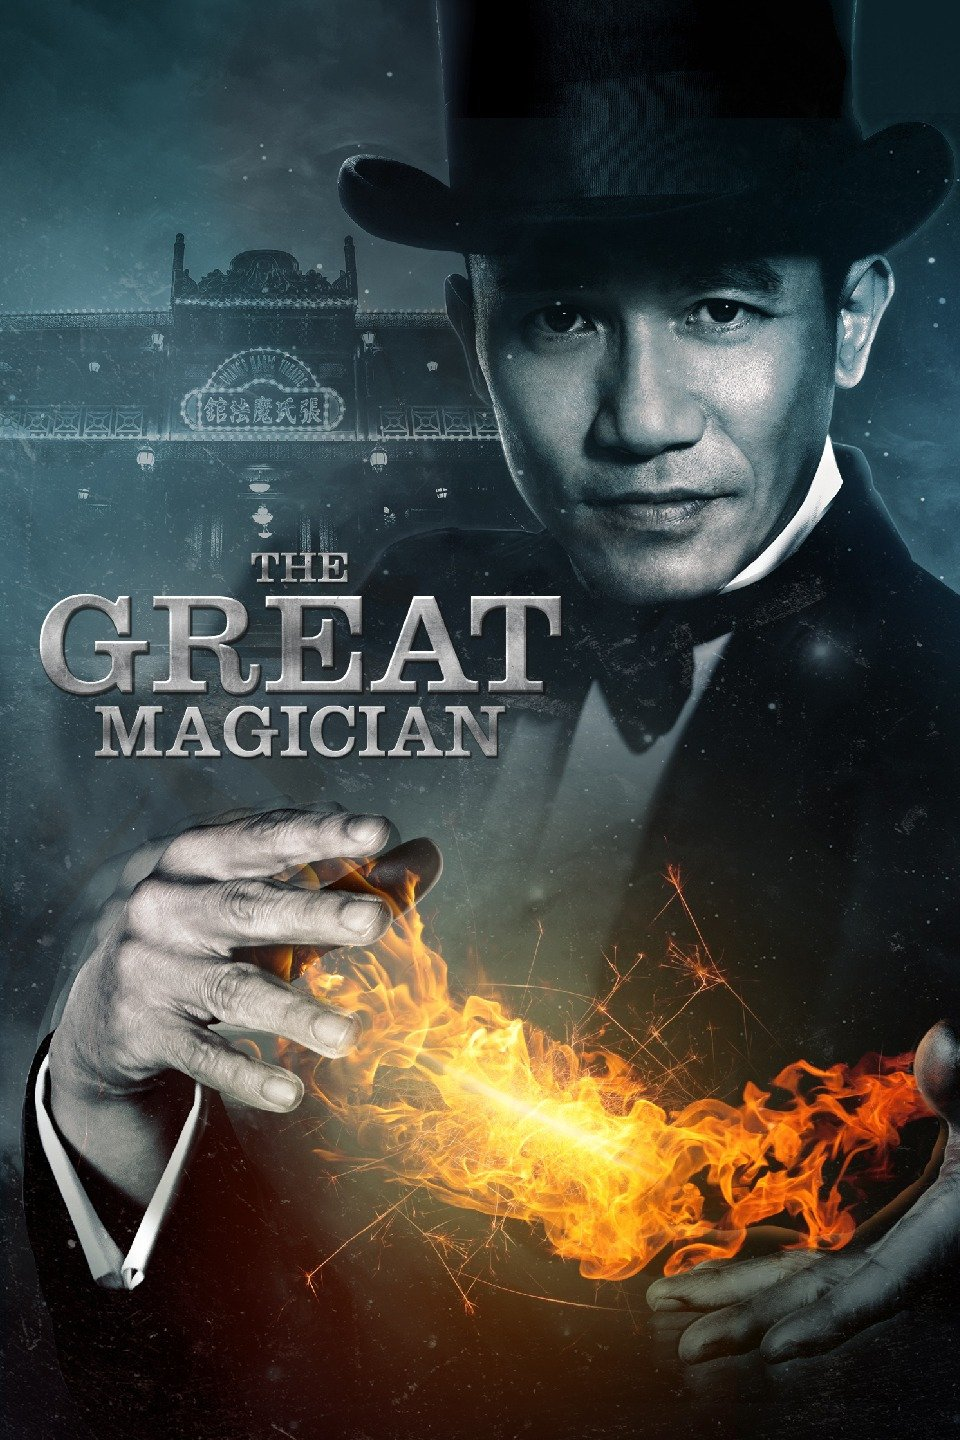 The Great Magician-Daai mo seut si